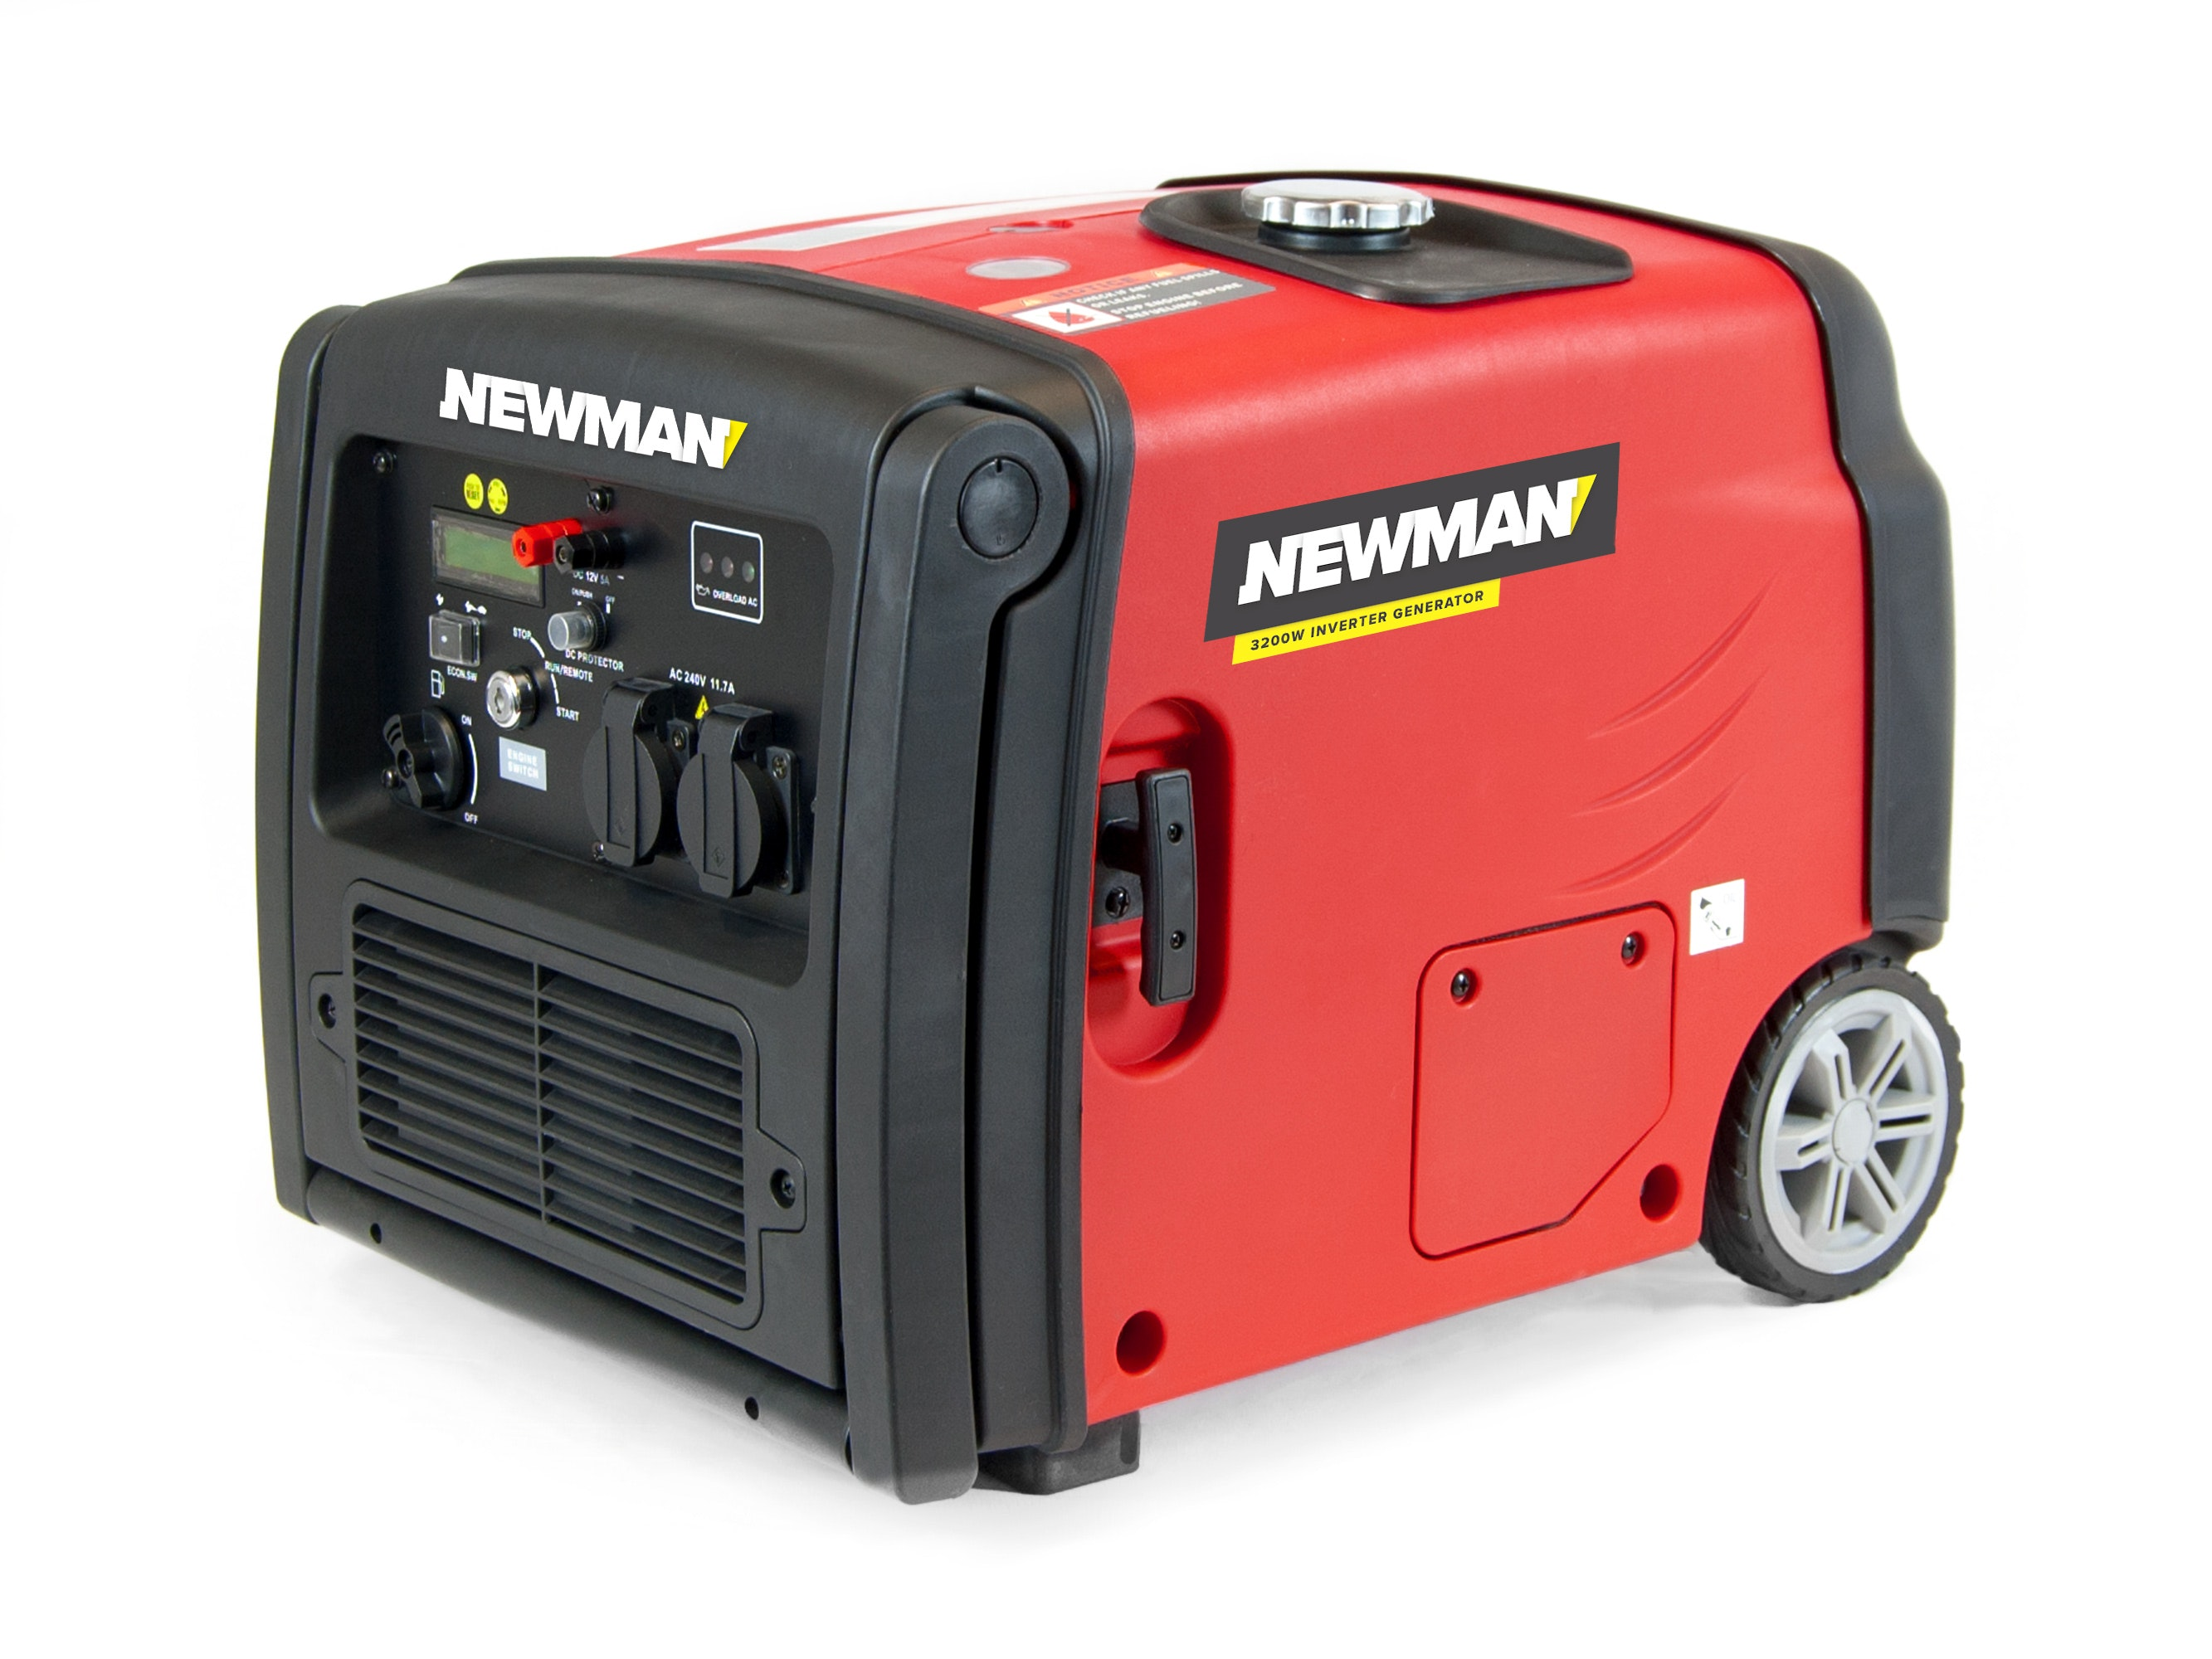 Newman Digital Inverter Generator 3200W with Electric Start